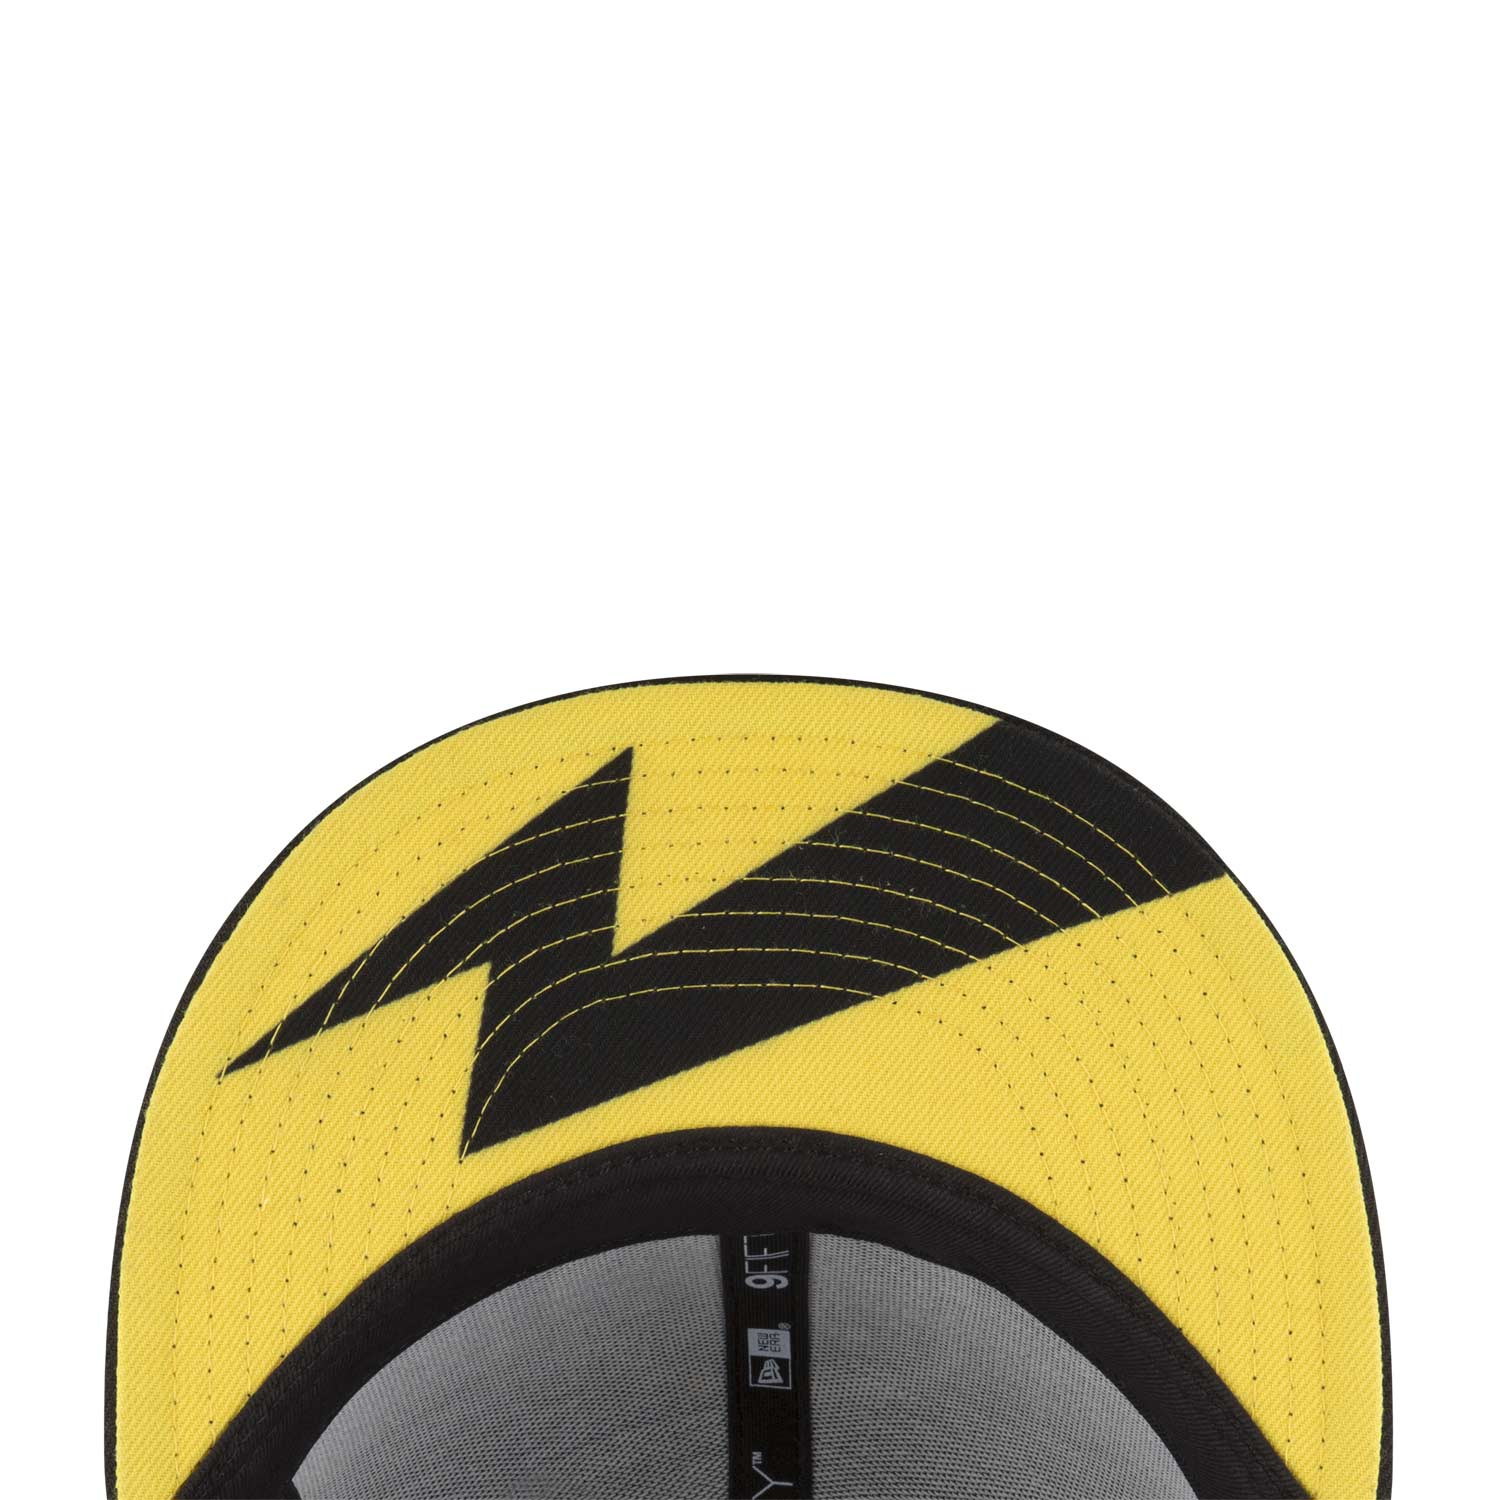 1500x1500 Pikachu Silhouette Sync 9fifty Baseball Cap By New Era (One Size